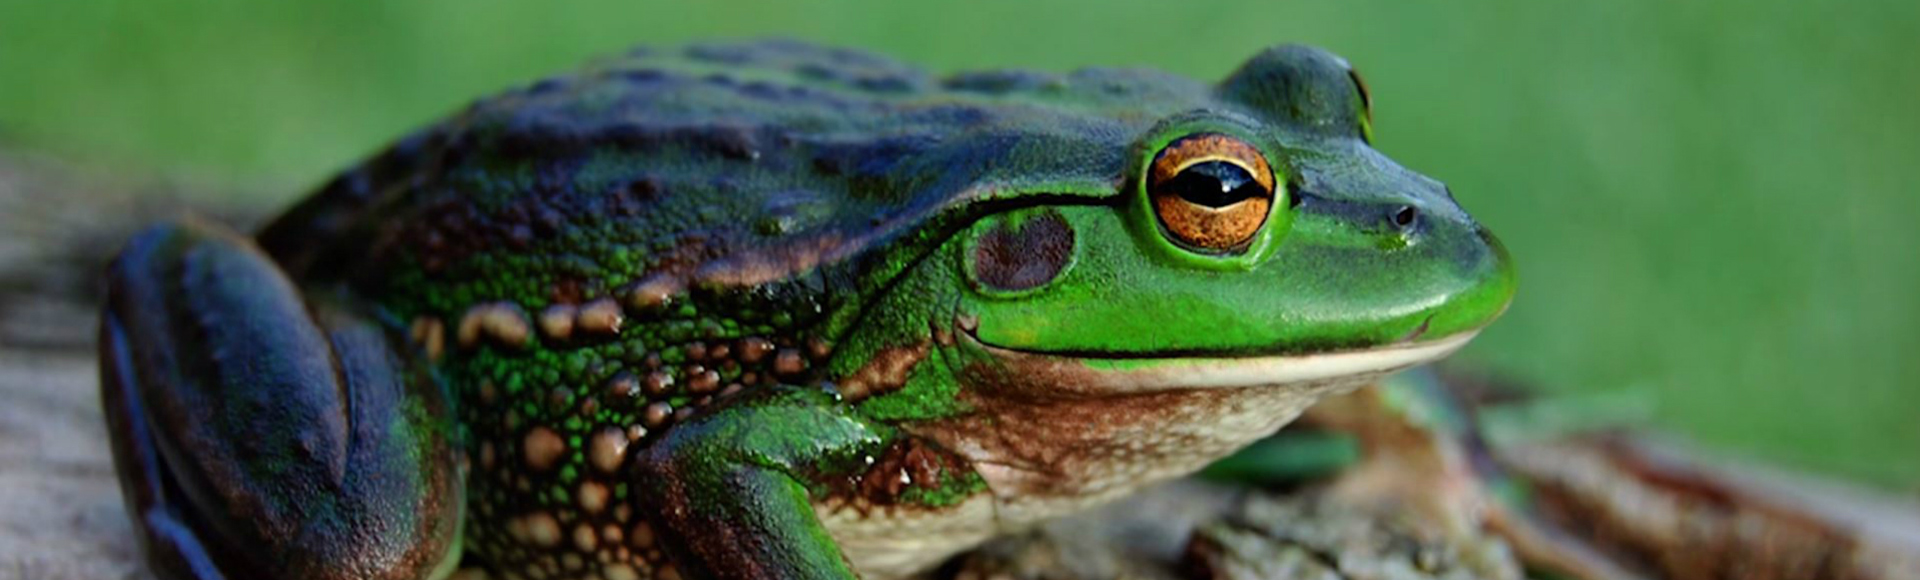 residential growling grass frog 1920x580